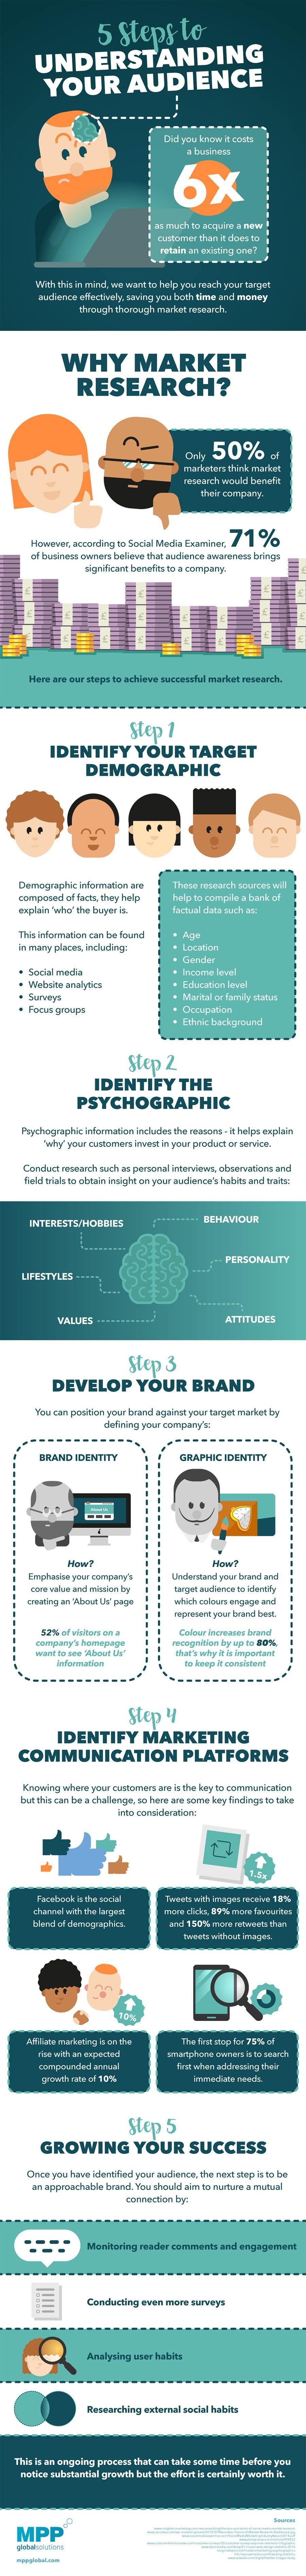 5 Steps to Understanding Your Audience - infographic